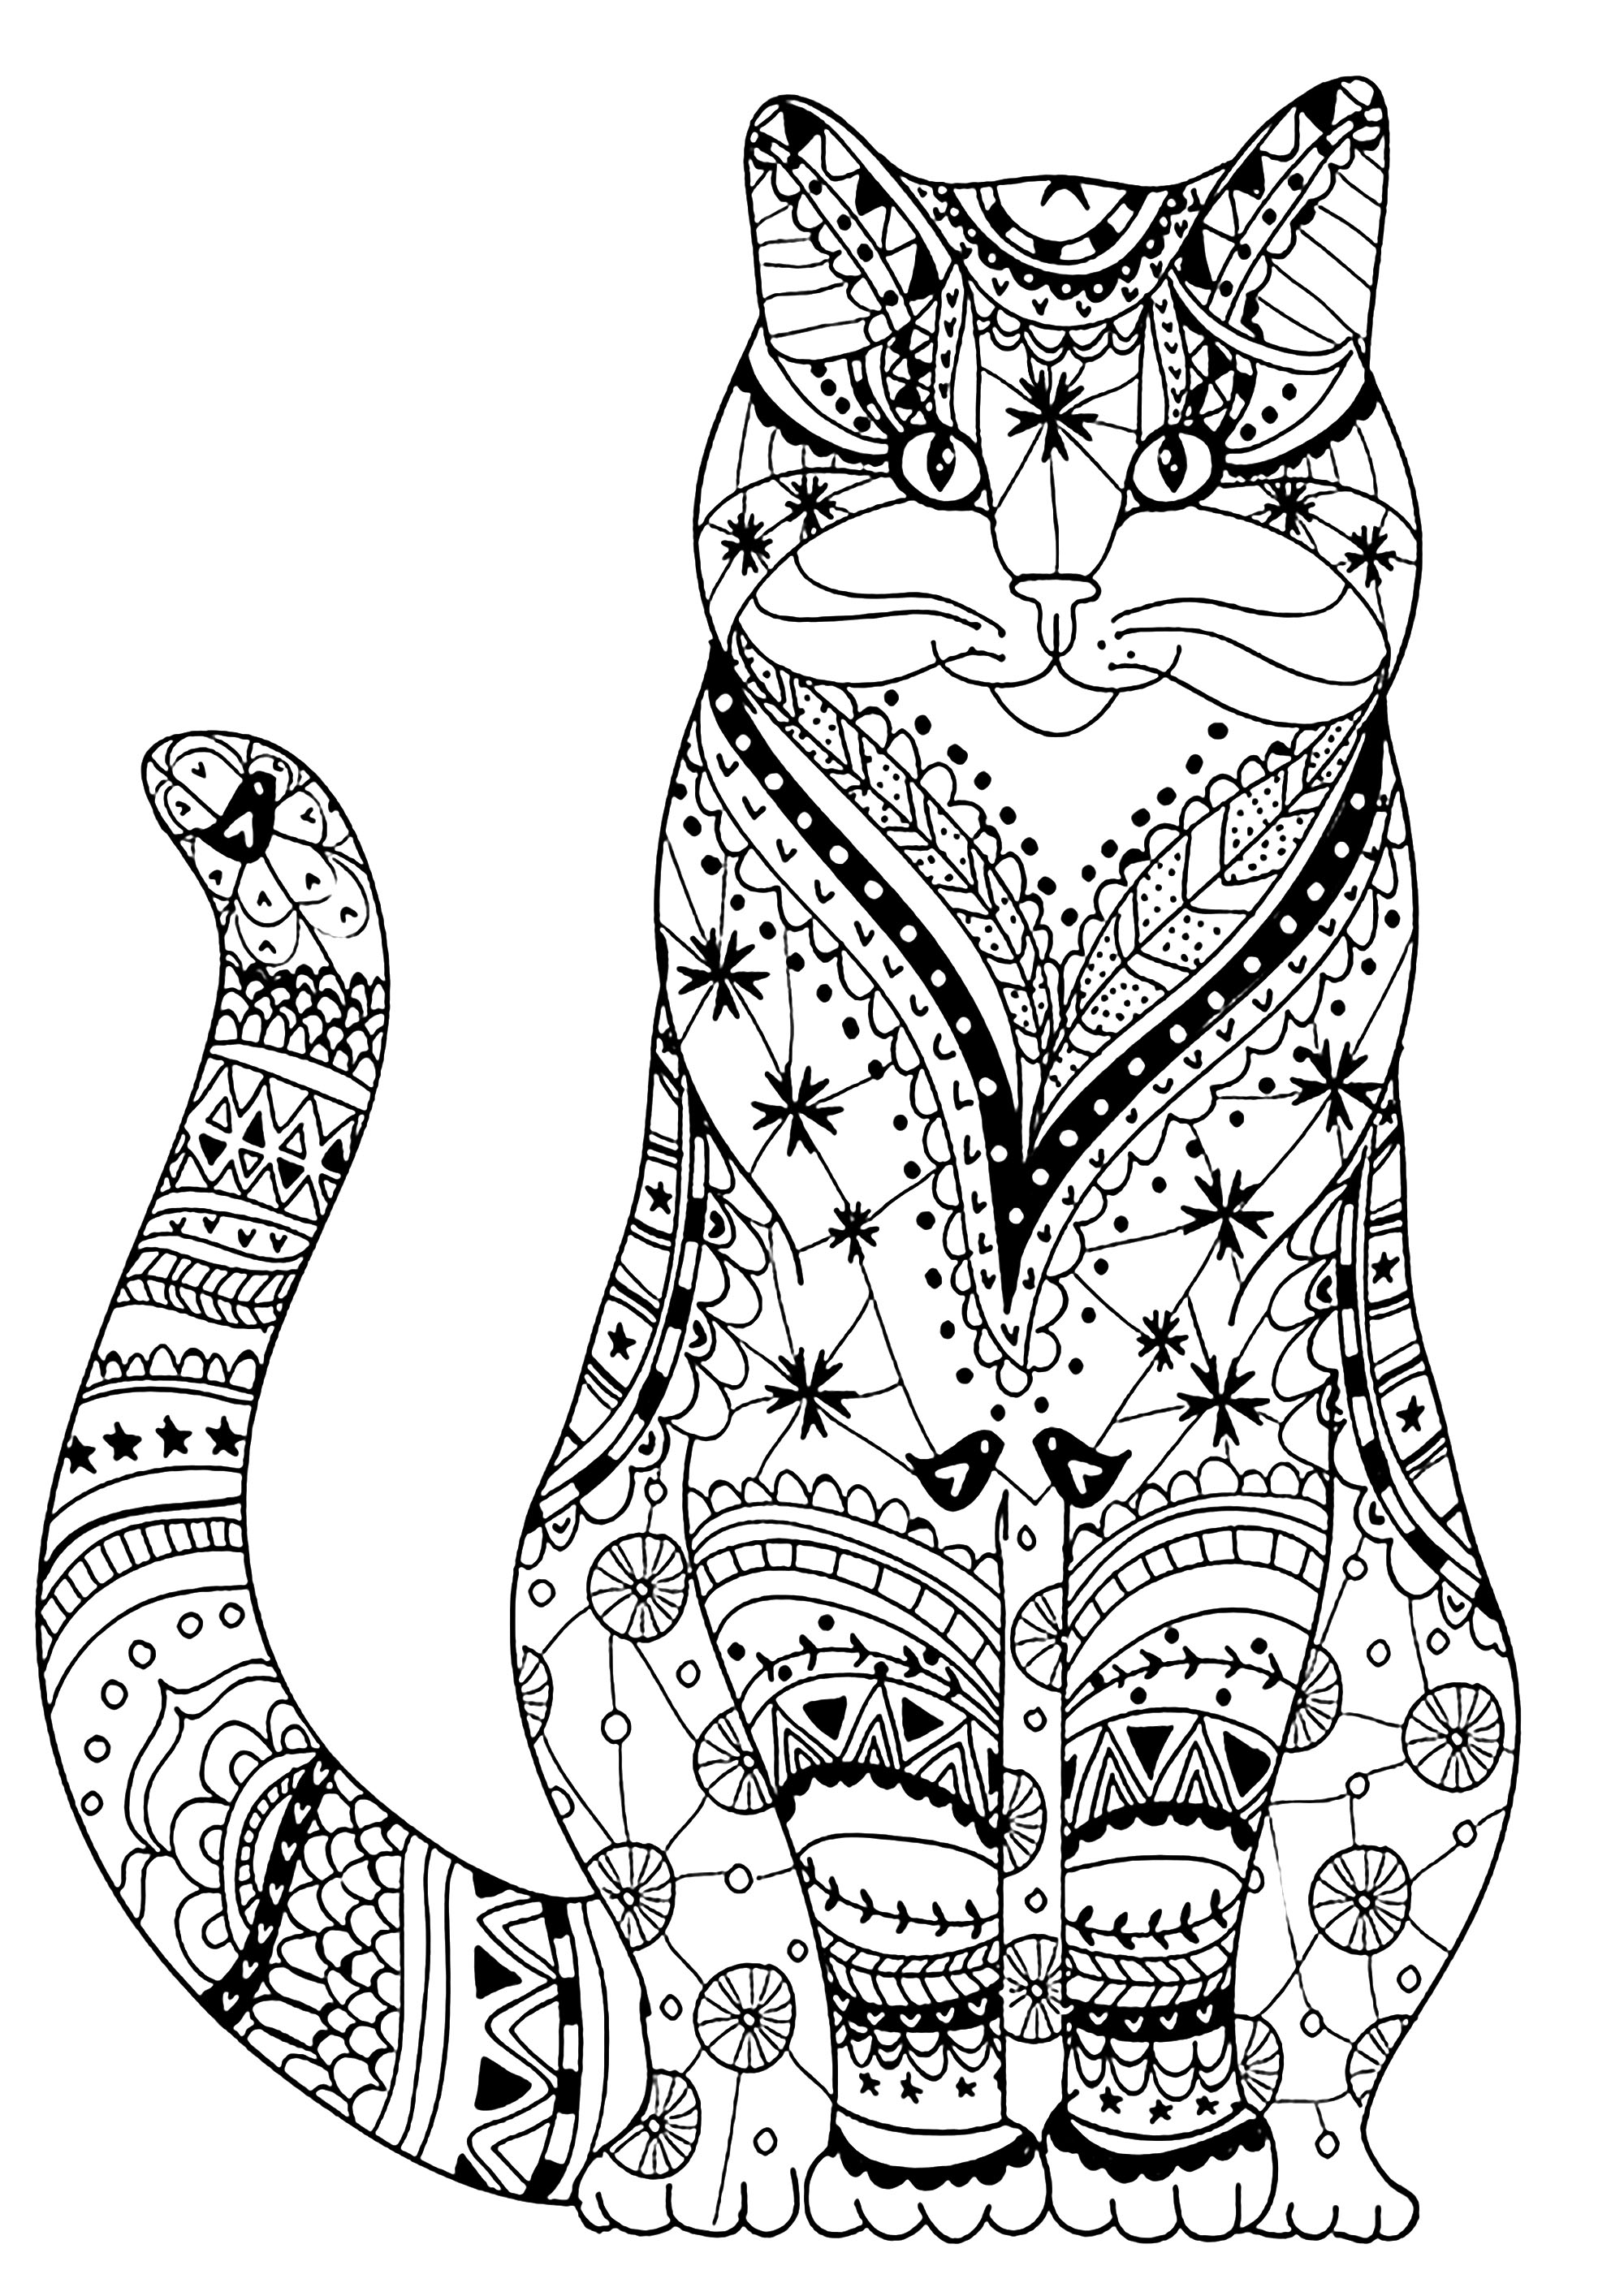 printable cat coloring pages get this cat coloring pages for kids 7fg50 coloring cat pages printable